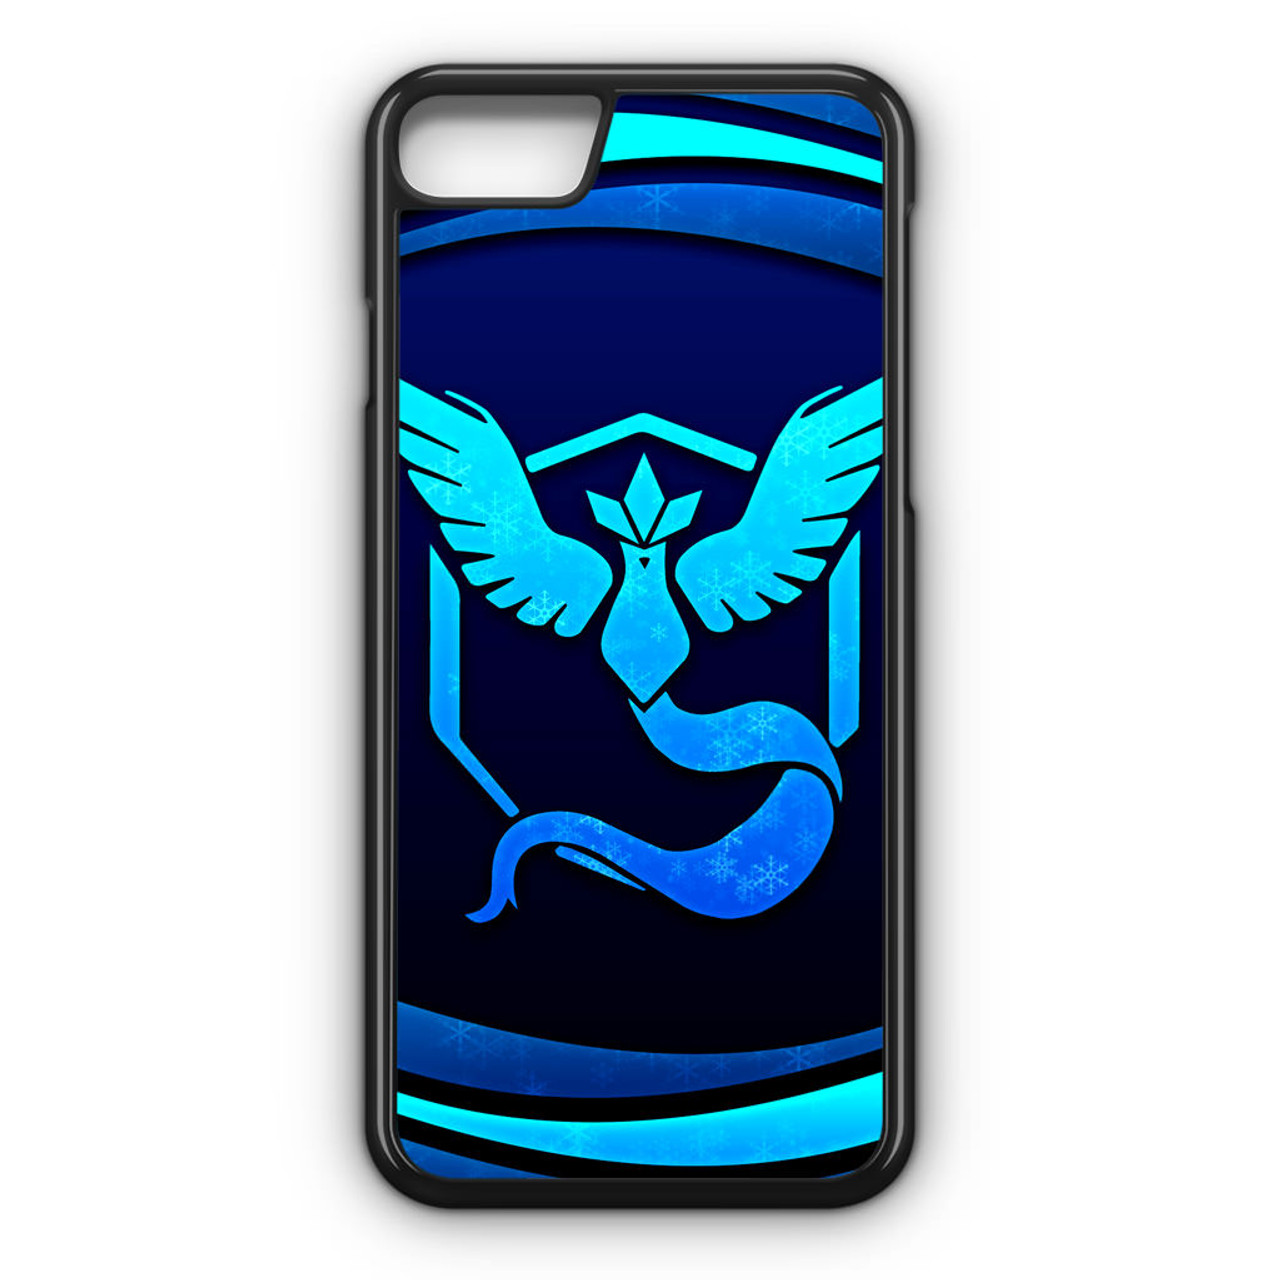 Pokémon GO Application Compatibility Information IOS: Compatible with iPhone ® 5s and above, with iOS Ver. 10 and above installed.. Not compatible with 5th generation iPod Touch devices or iPhone 4S or earlier iPhone devices.